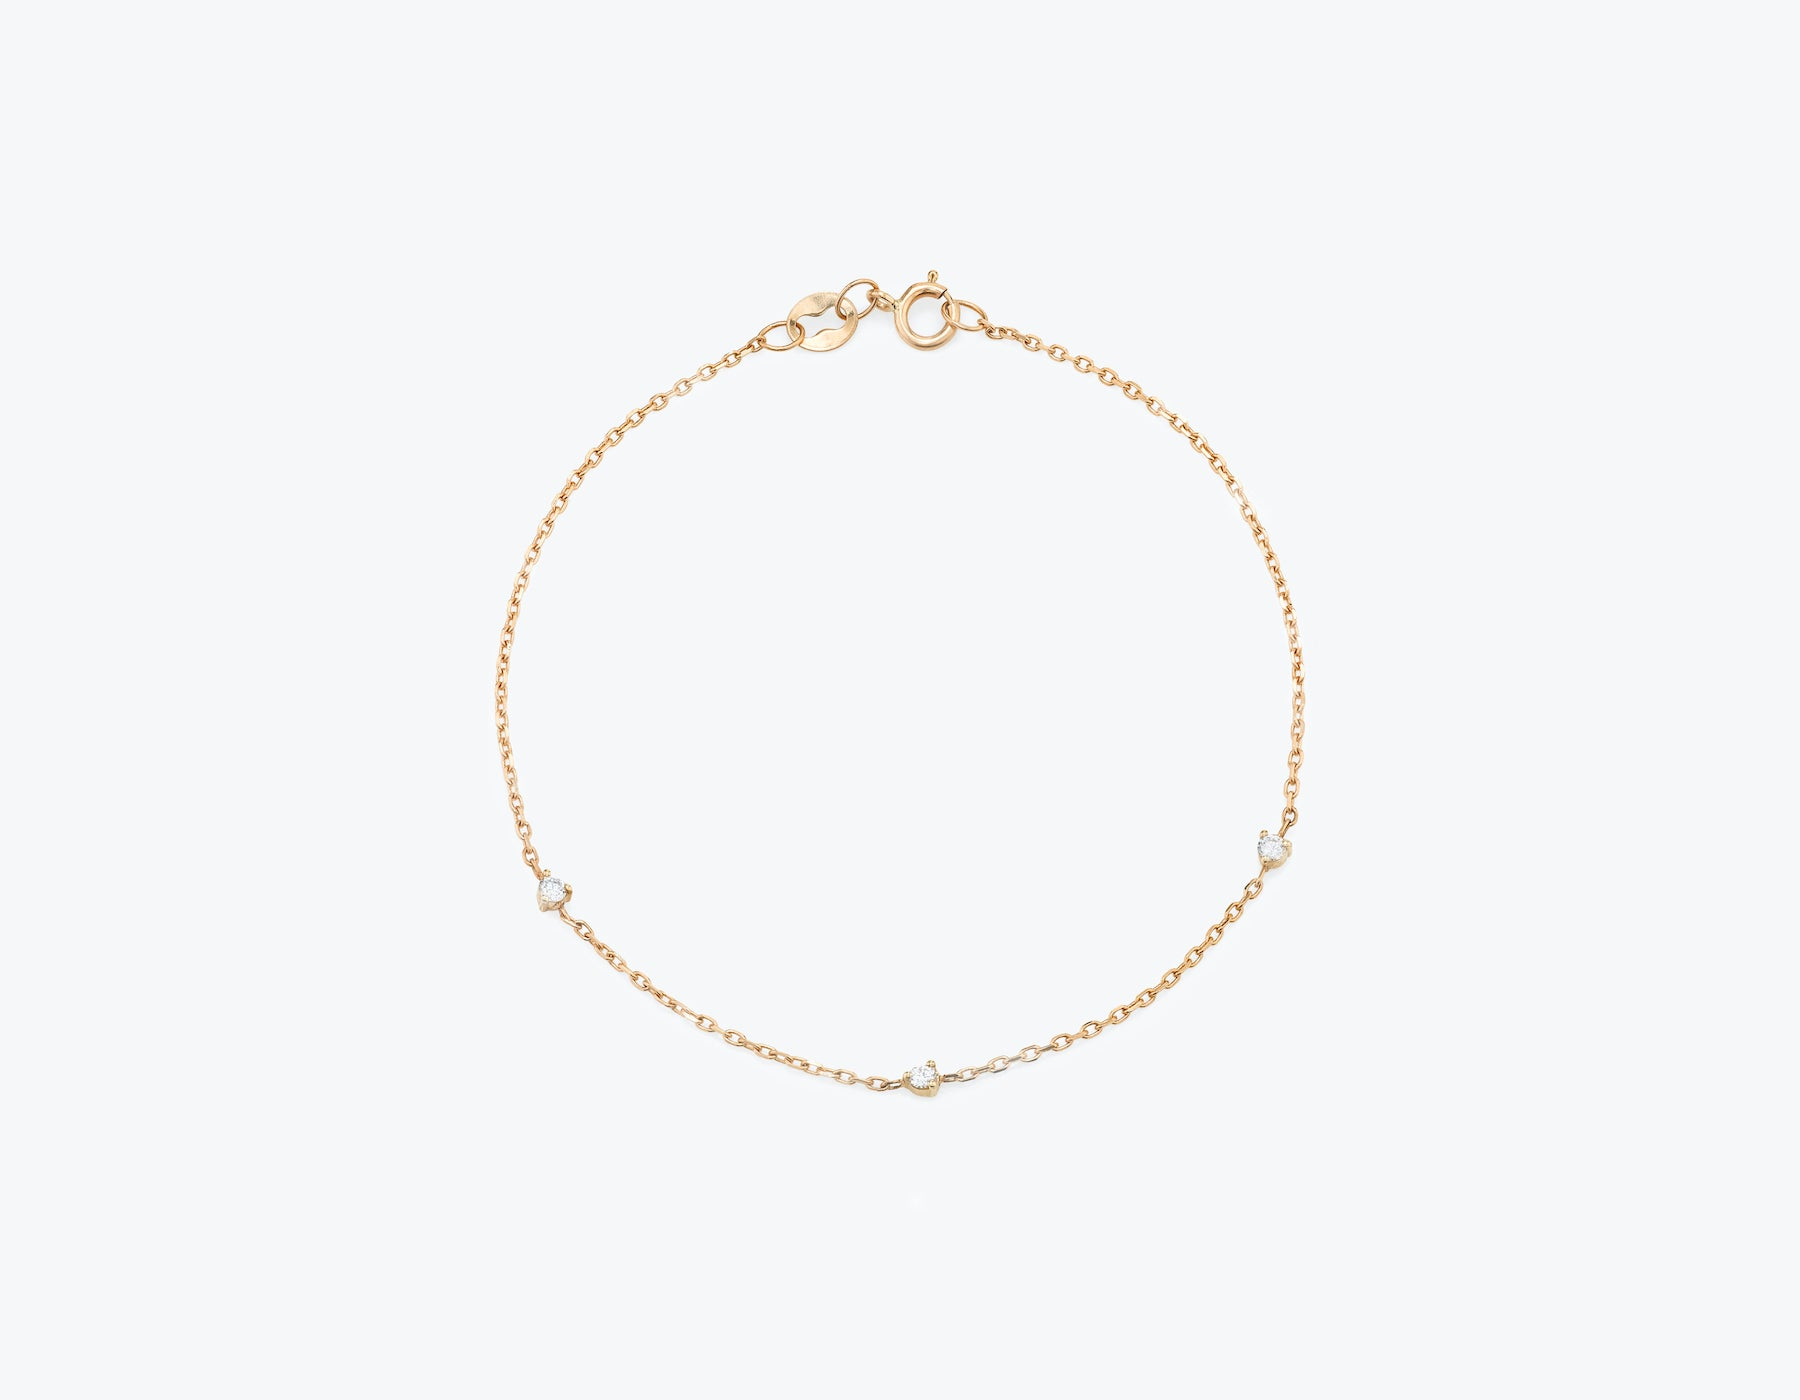 Vrai Tiny Diamond Station Bracelet simple modern, 14K Rose Gold